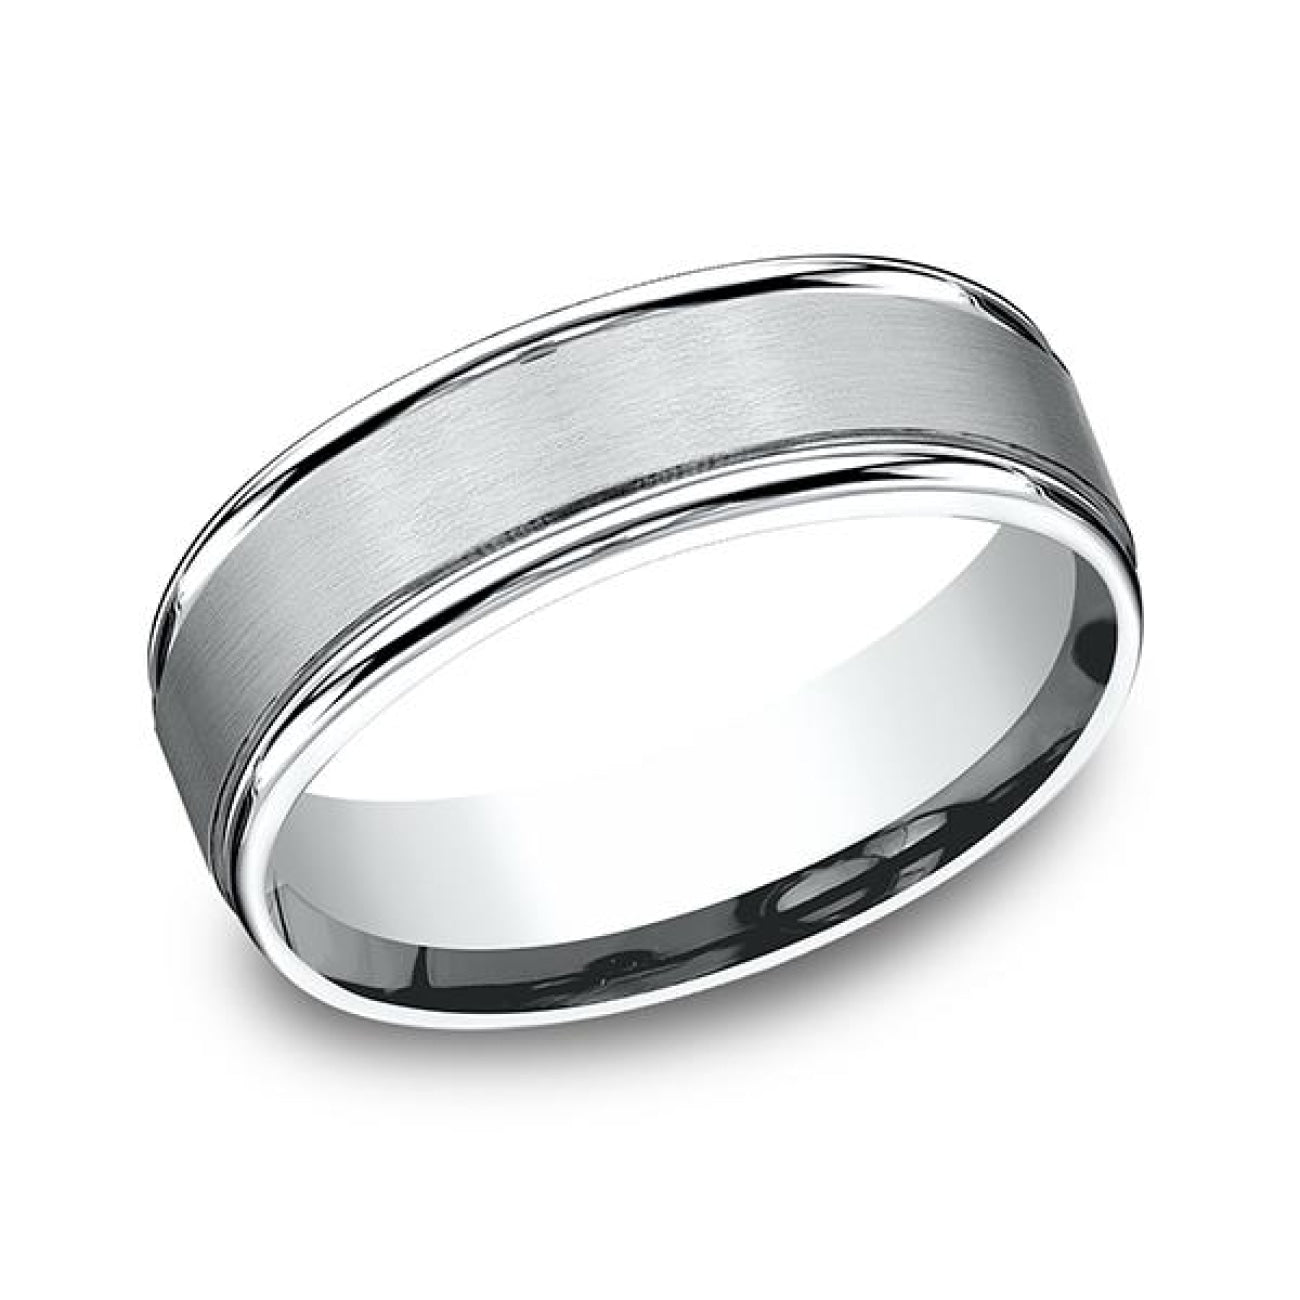 Benchmark Engagement - Comfort-Fit Design Wedding Band | Manfredi Jewels